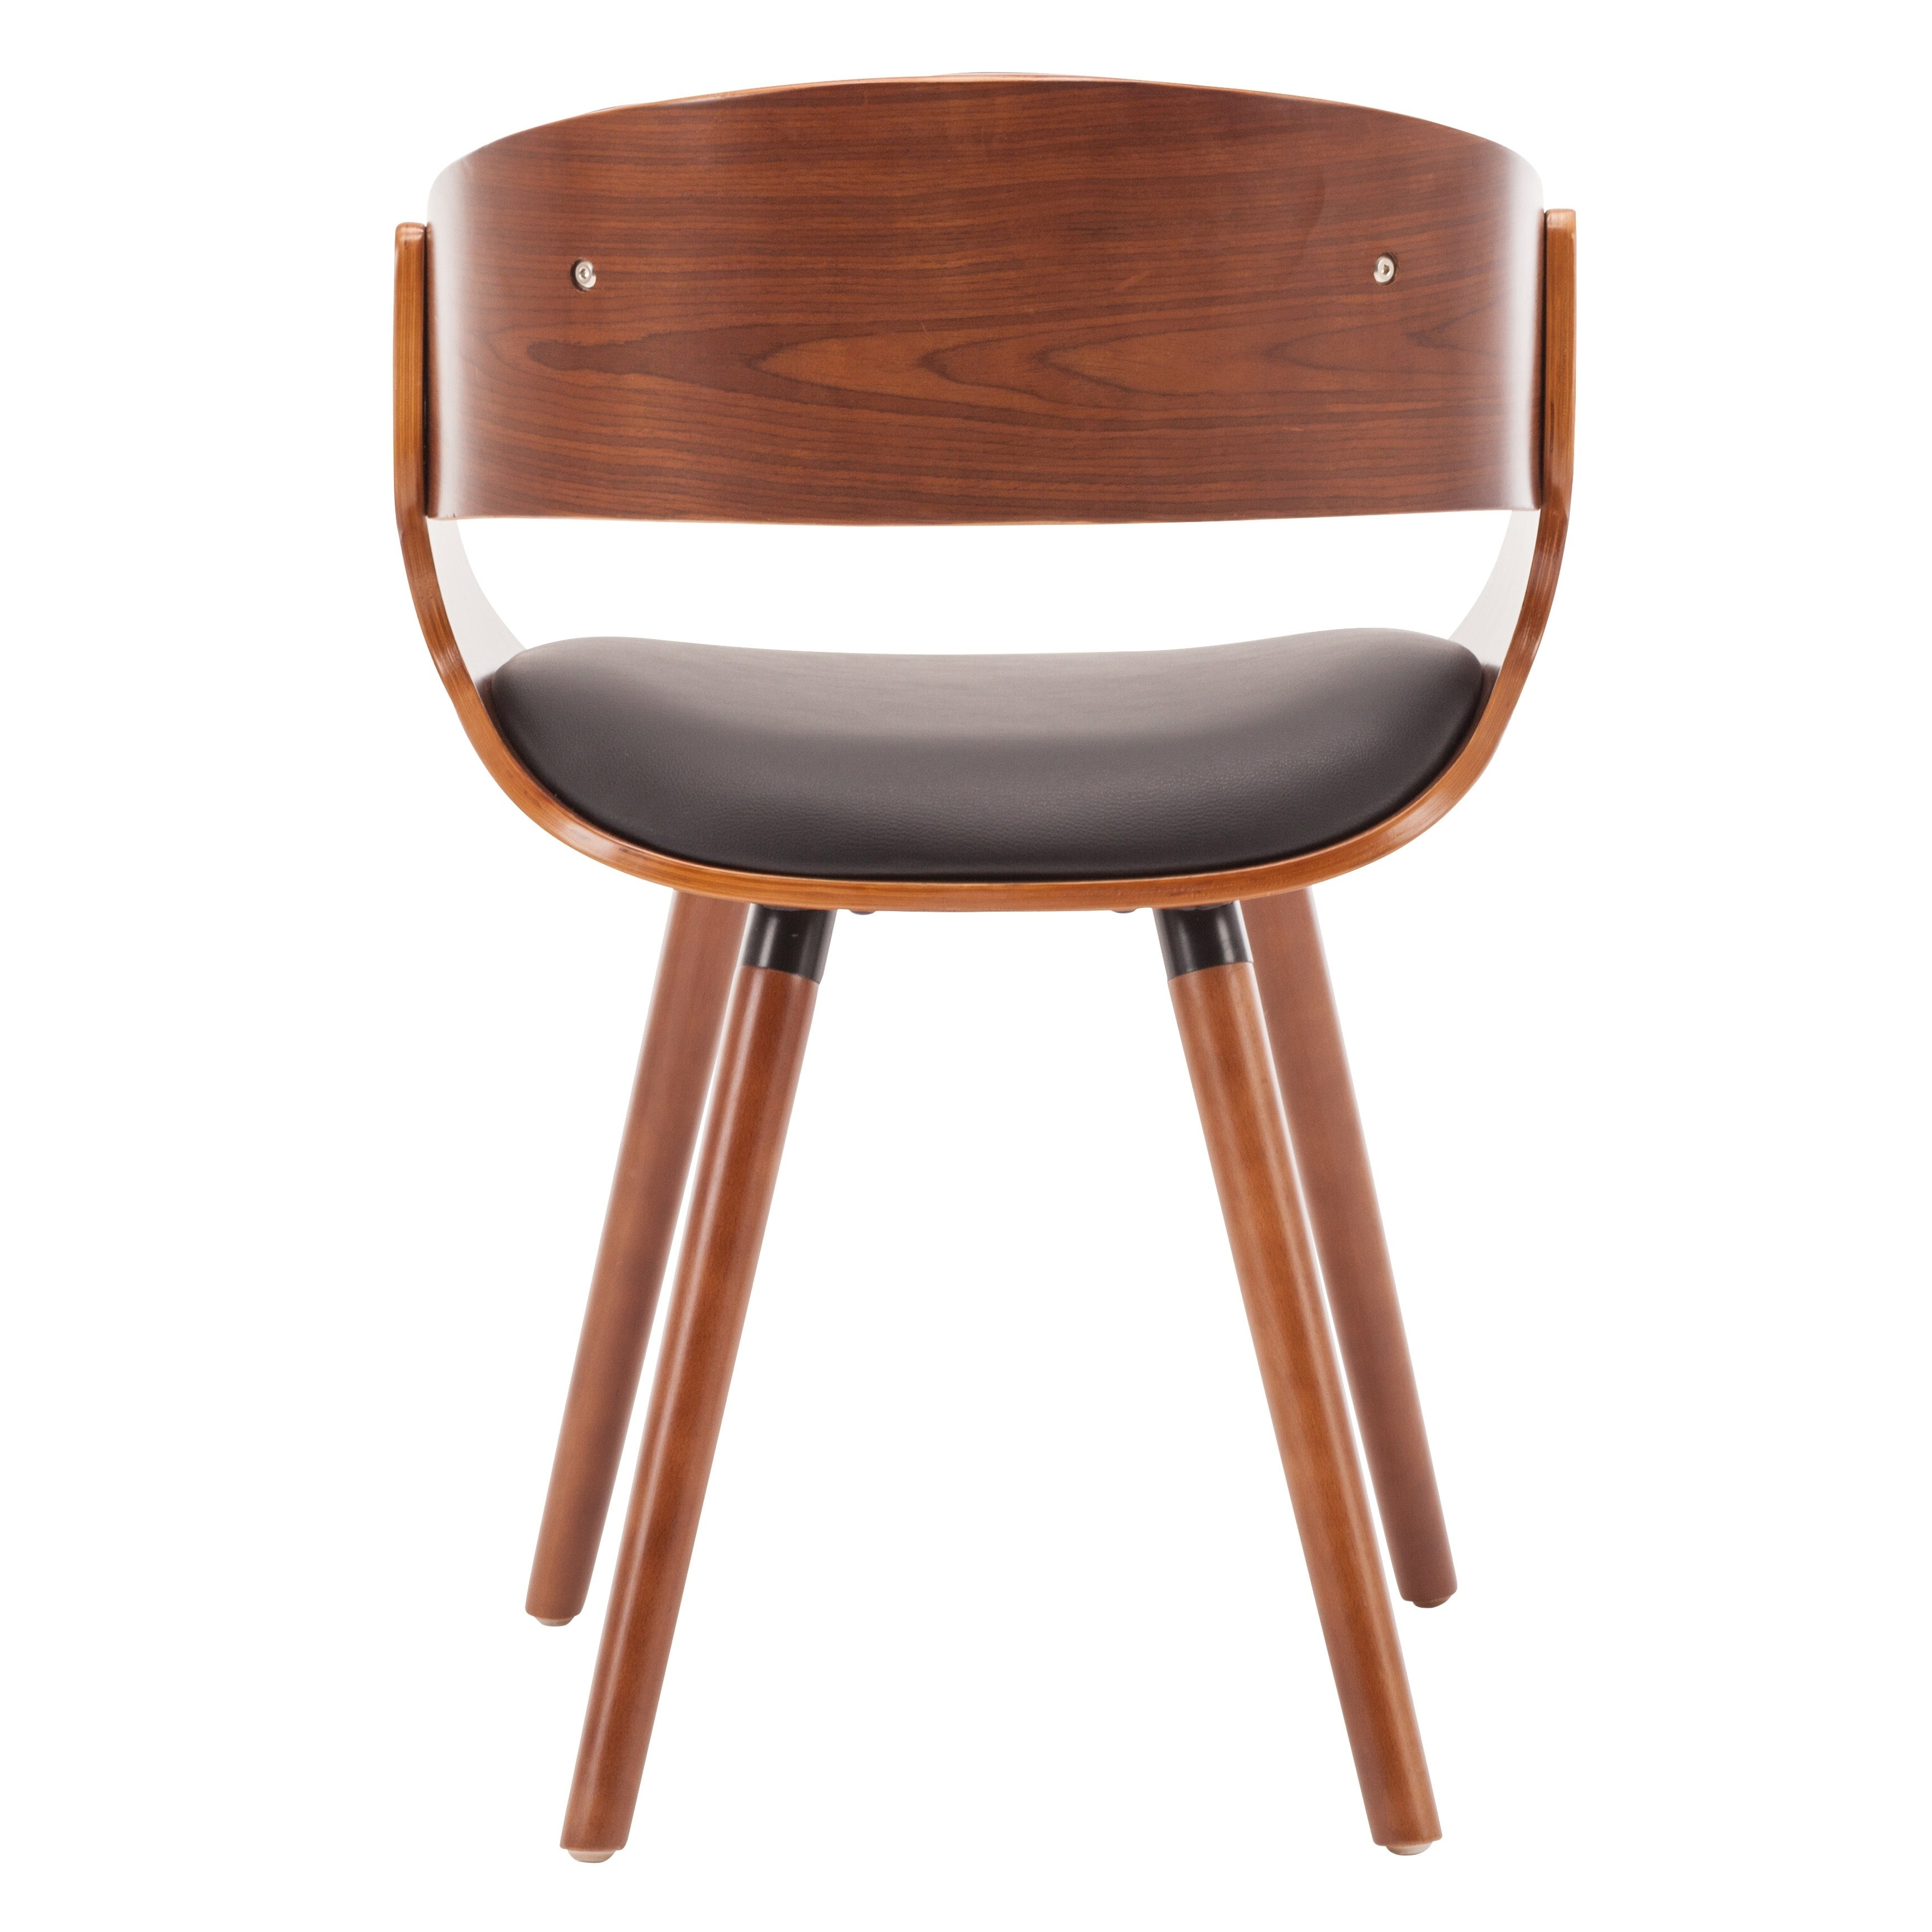 Shop Porthos Homes Dining Chair With PVC Upholstery, Wooden Legs ...